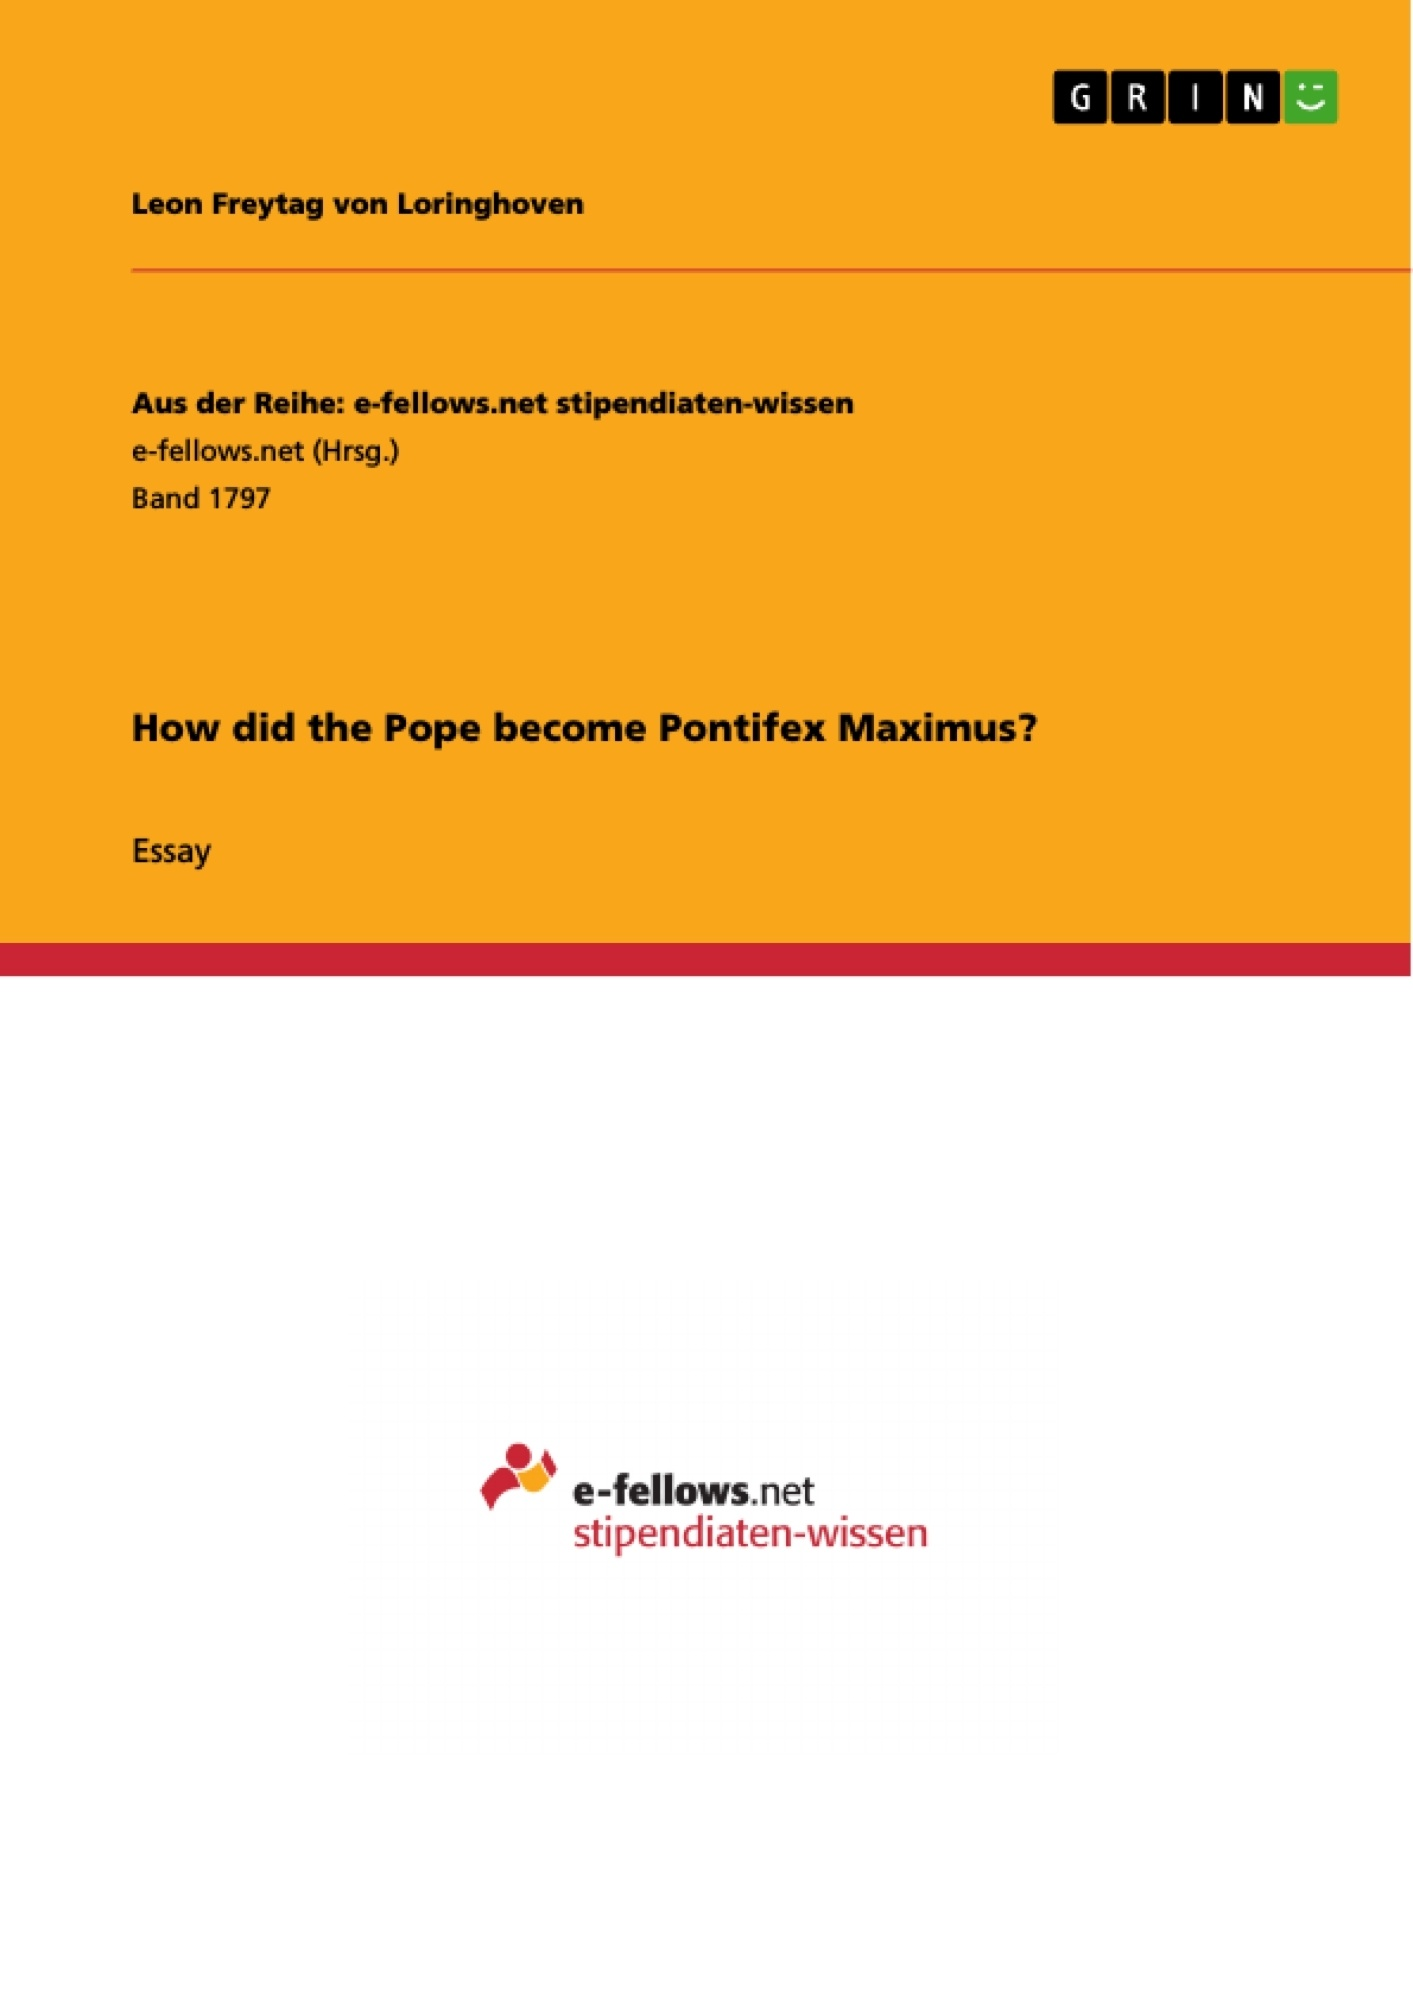 Title: How did the Pope become Pontifex Maximus?